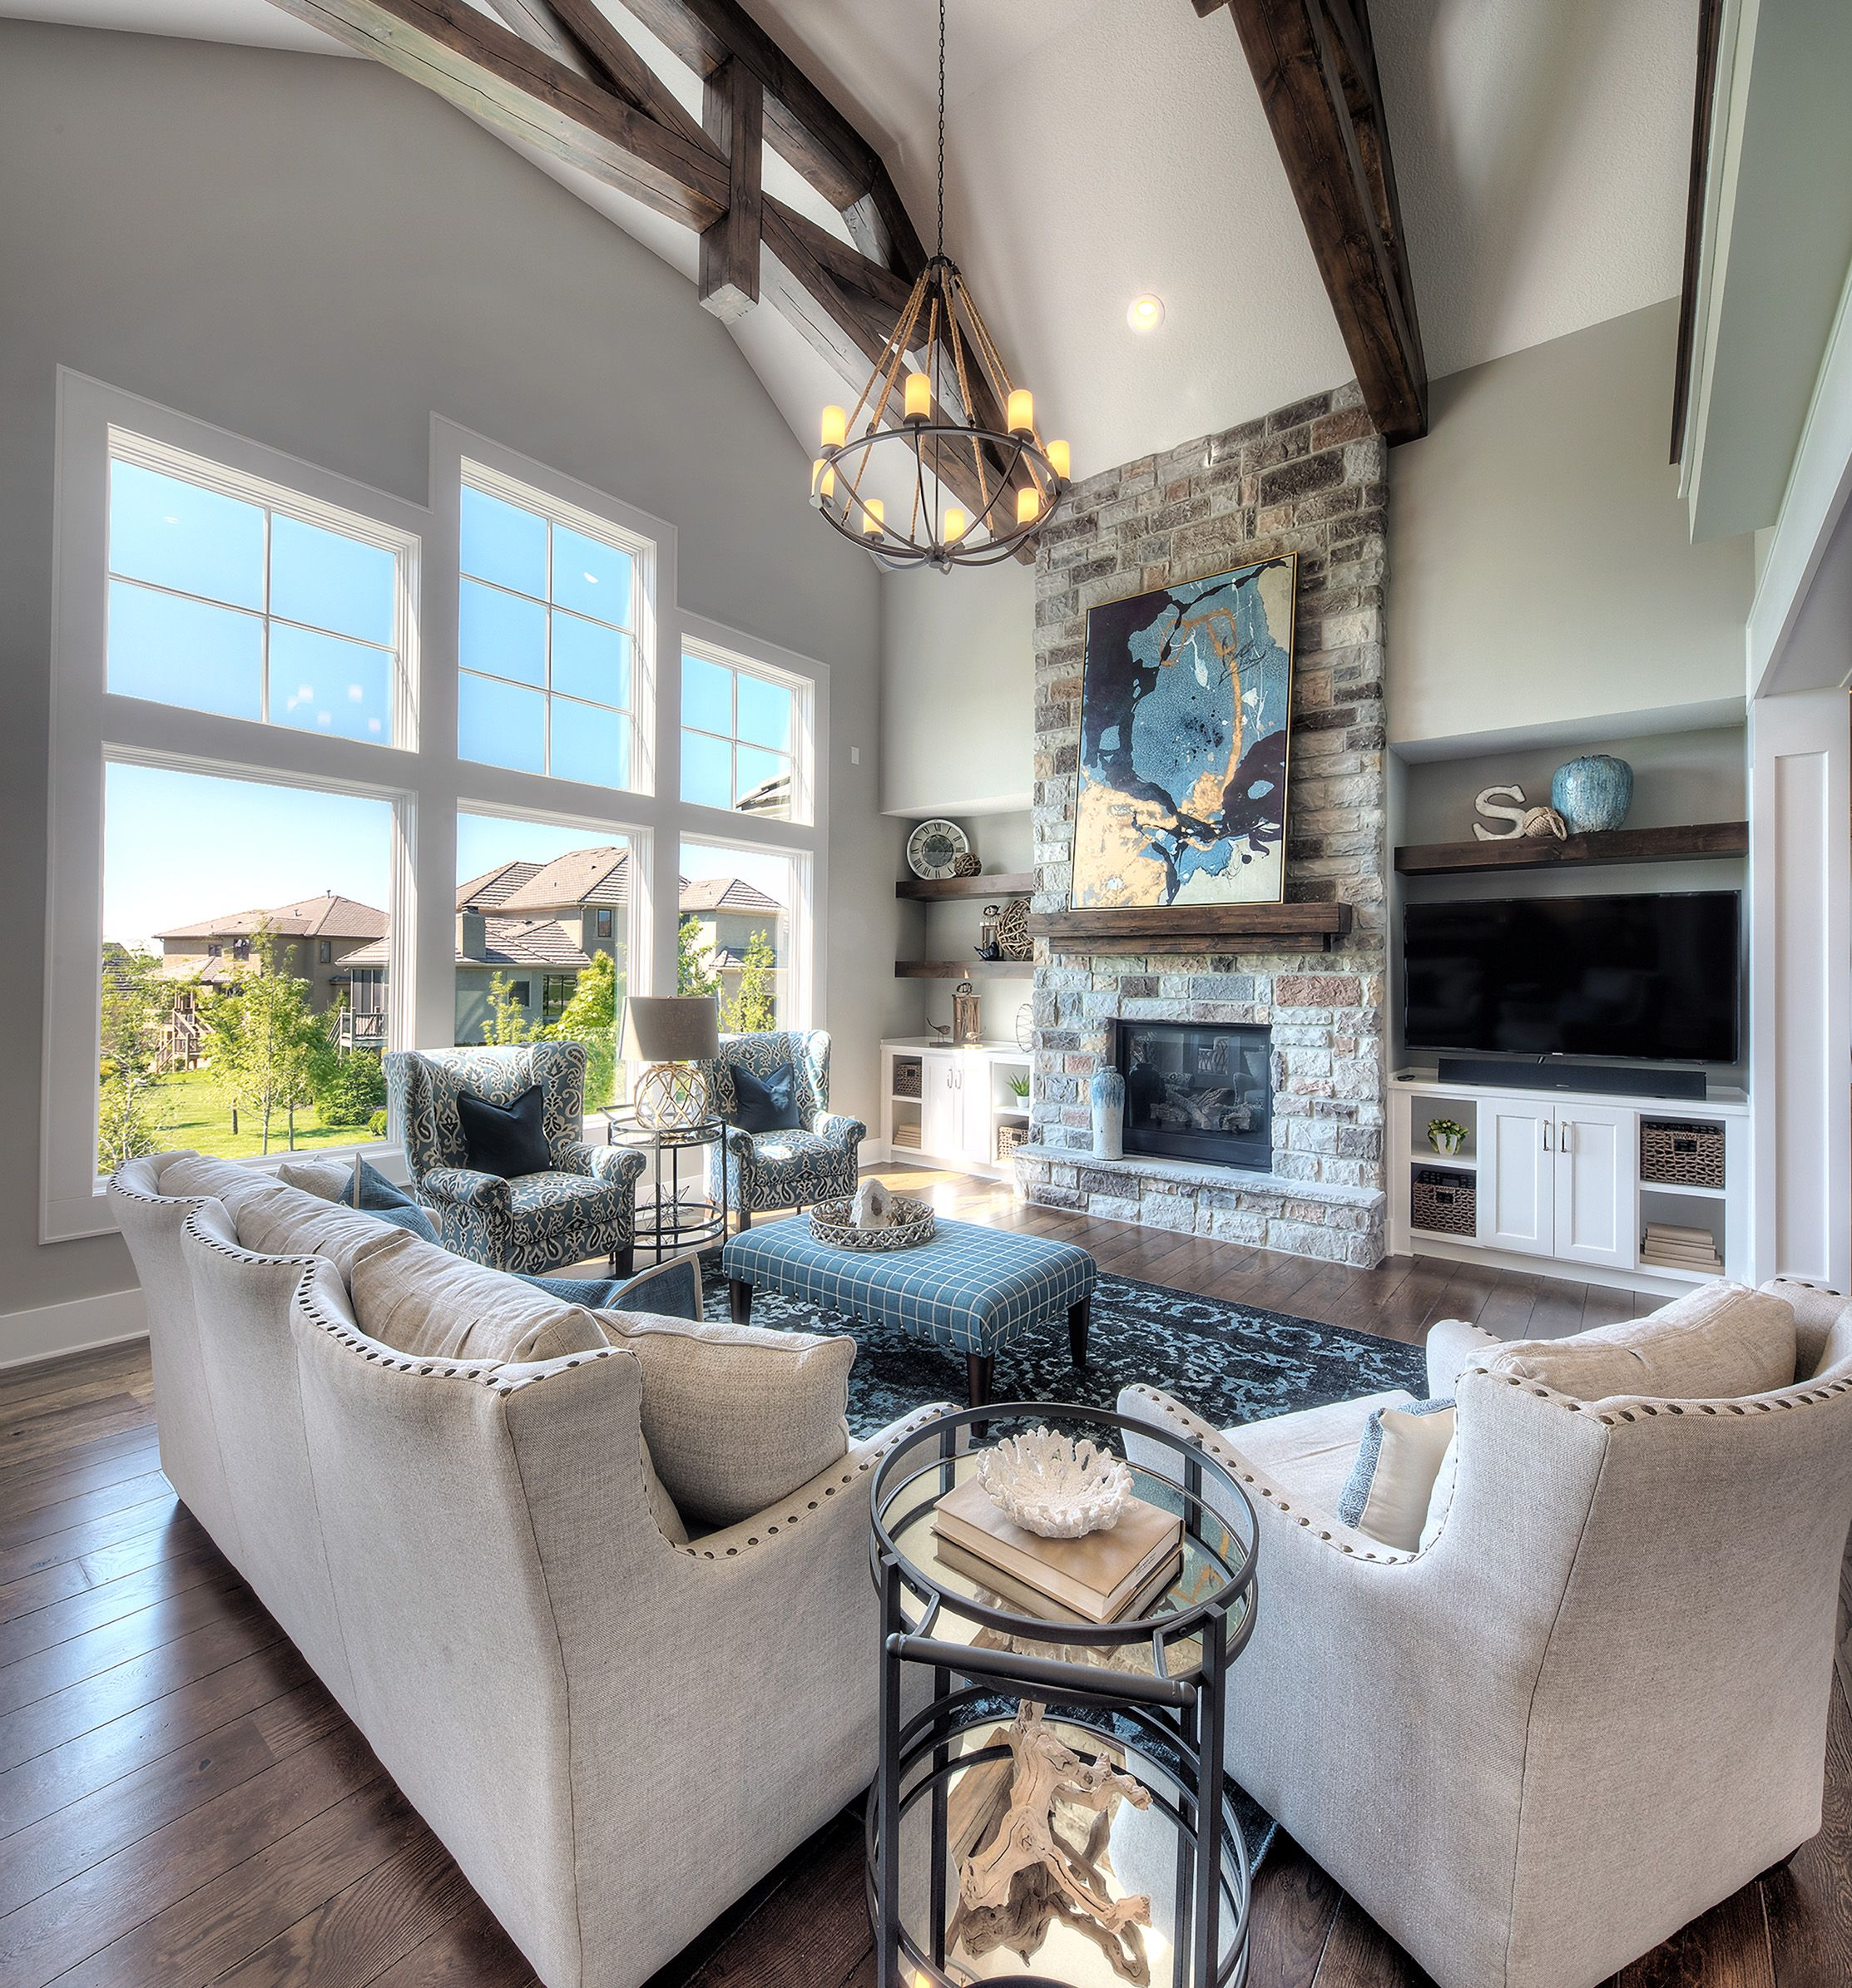 Gray And White Transitional Rustic Living Room With: Living Room, Stone Fireplace, Floor To Ceiling Fireplace